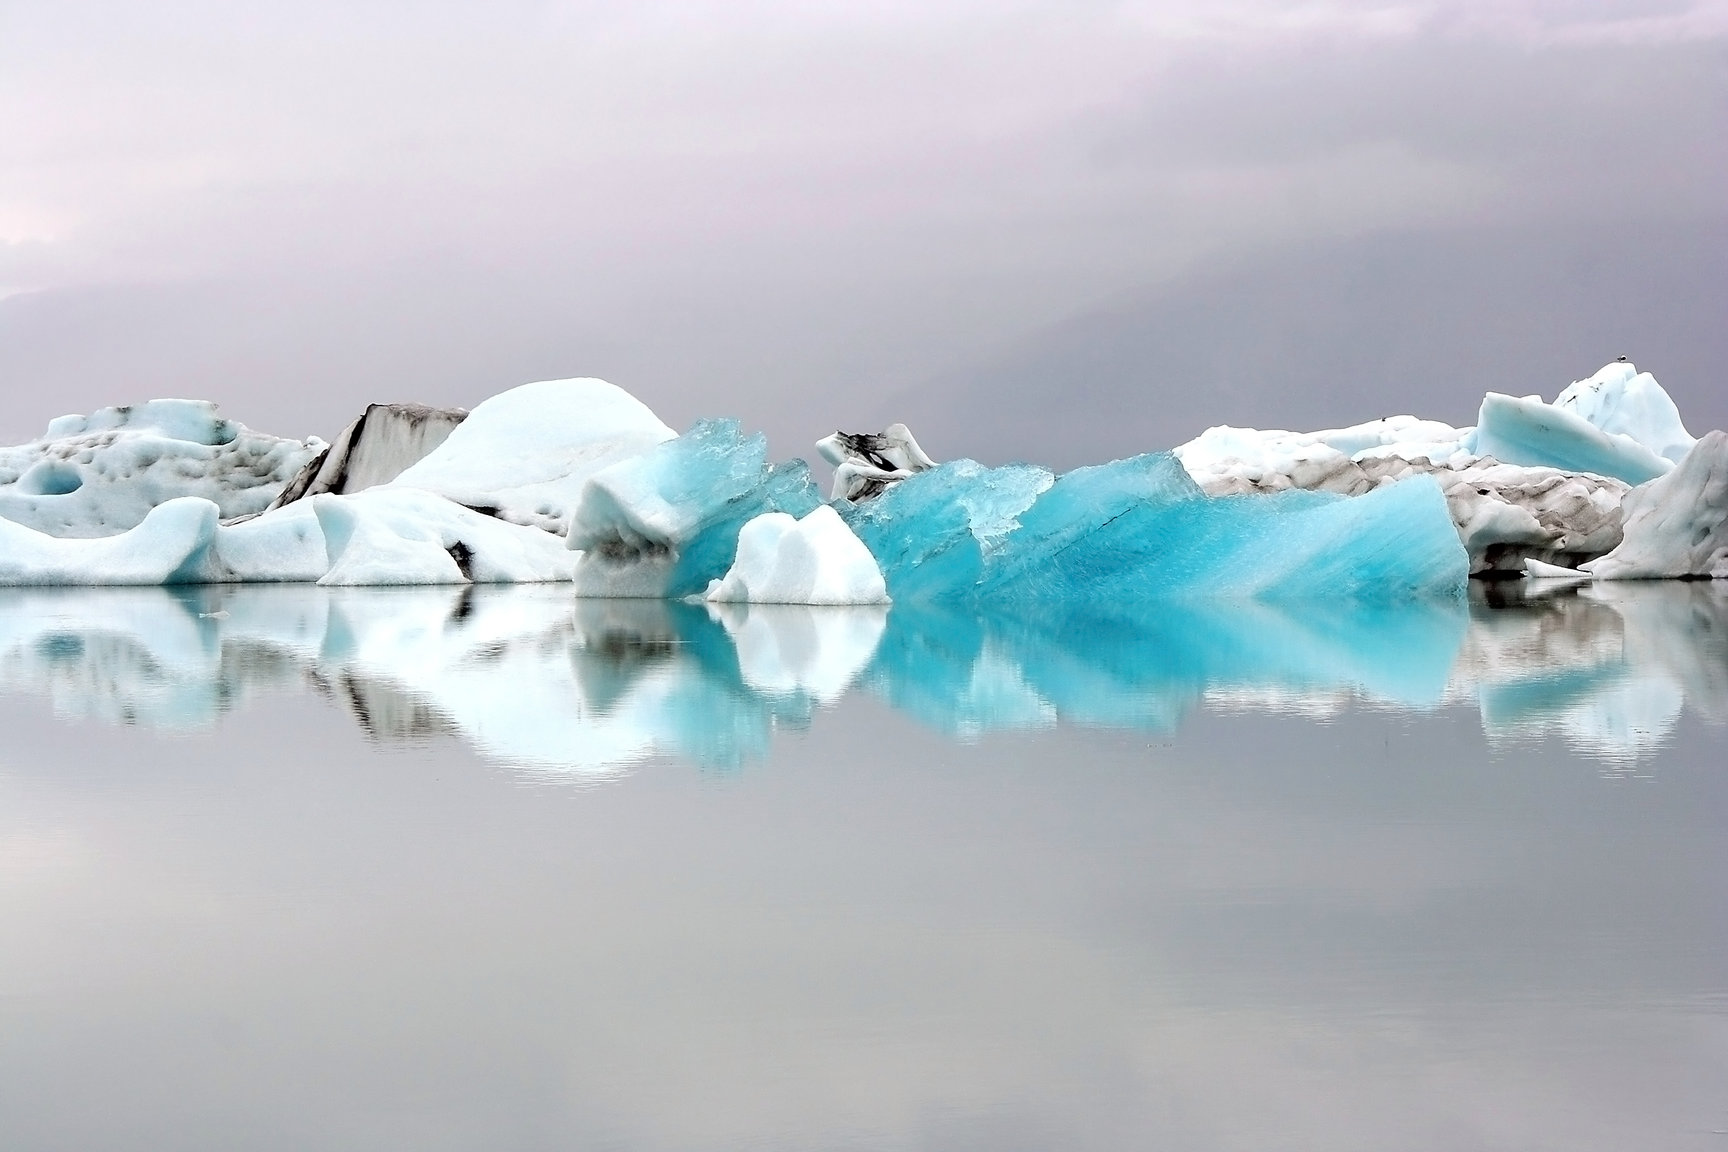 The icebergs of Jökulsárlón glacier lagoon have broken off from Vatnajökull which is the largest ice cap in Iceland.